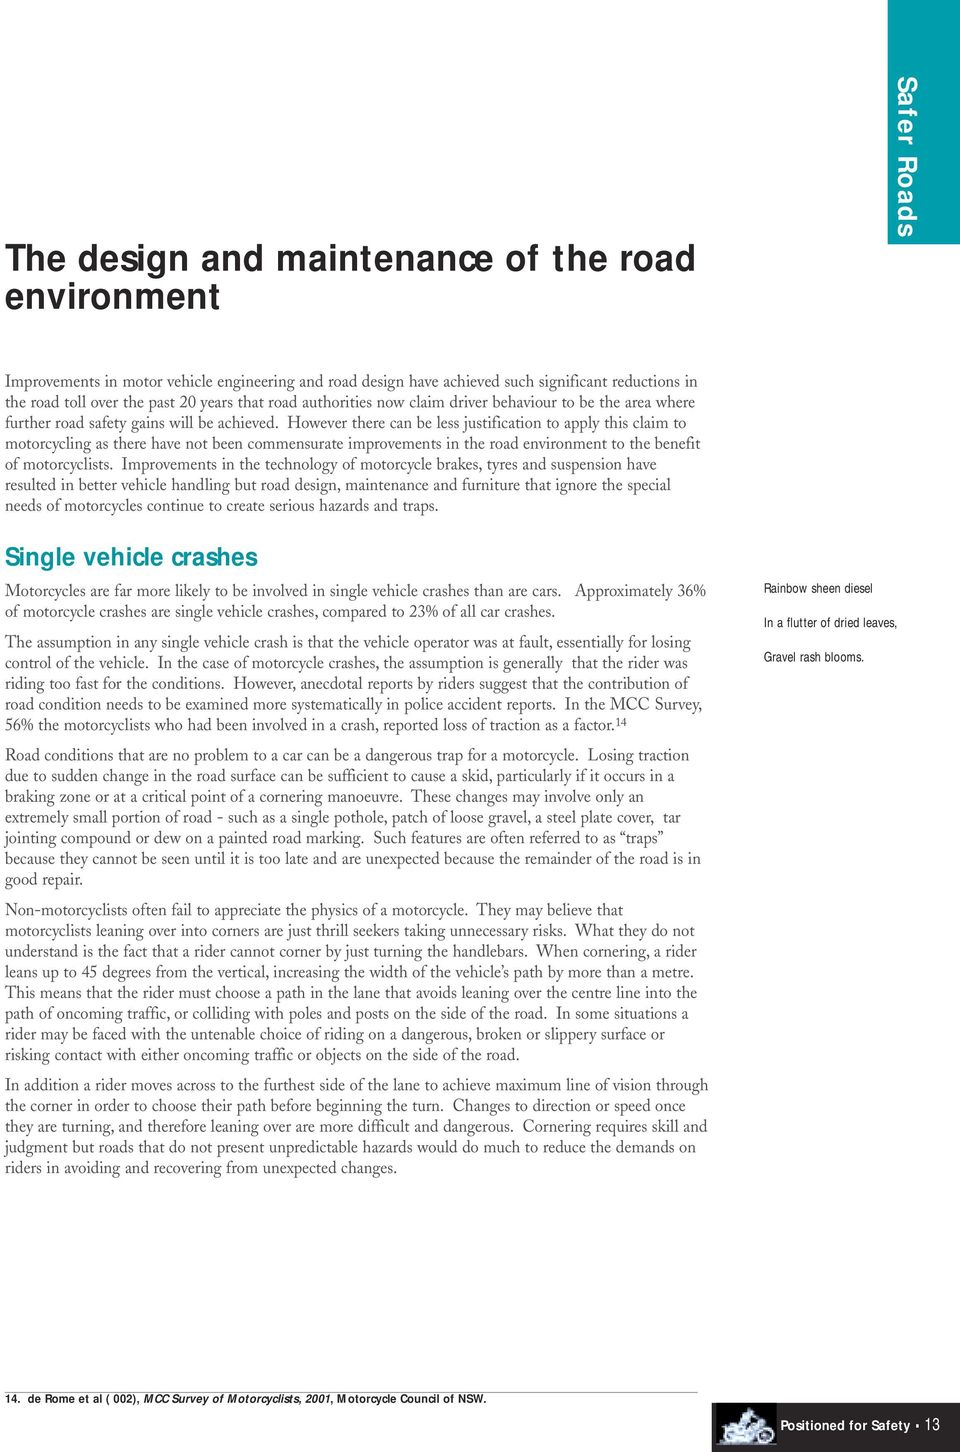 However there can be less justification to apply this claim to motorcycling as there have not been commensurate improvements in the road environment to the benefit of motorcyclists.